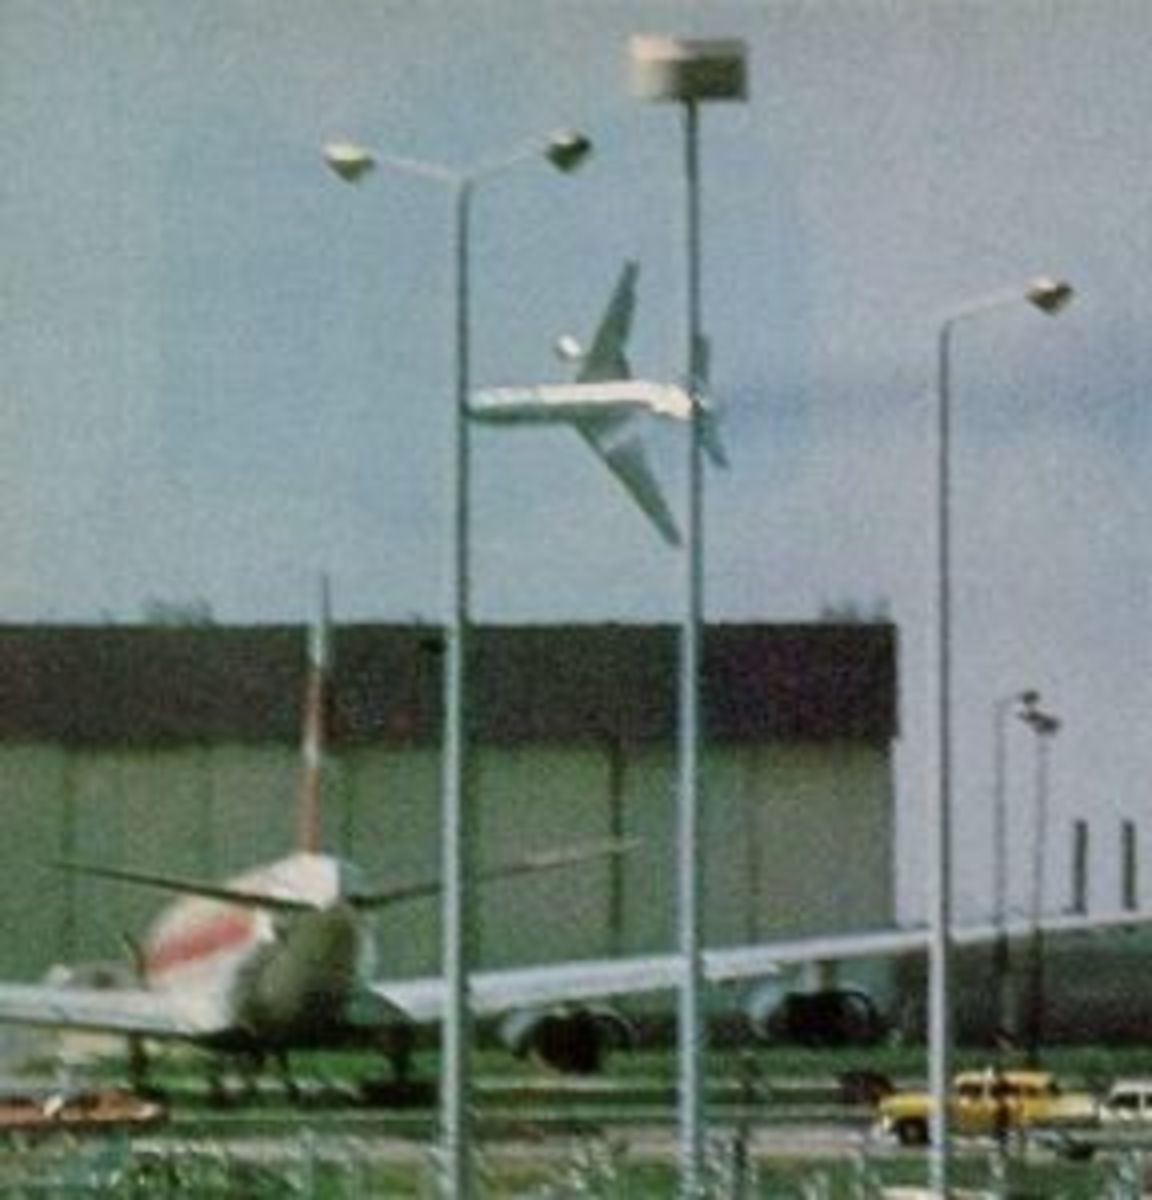 These pictures was taken by an amateur photographer seconds before an American Airlines DC-10 crashed at Chicago O'Hare Airport, after losing an engine during takeoff. Improper maintenance procedures was to blame.